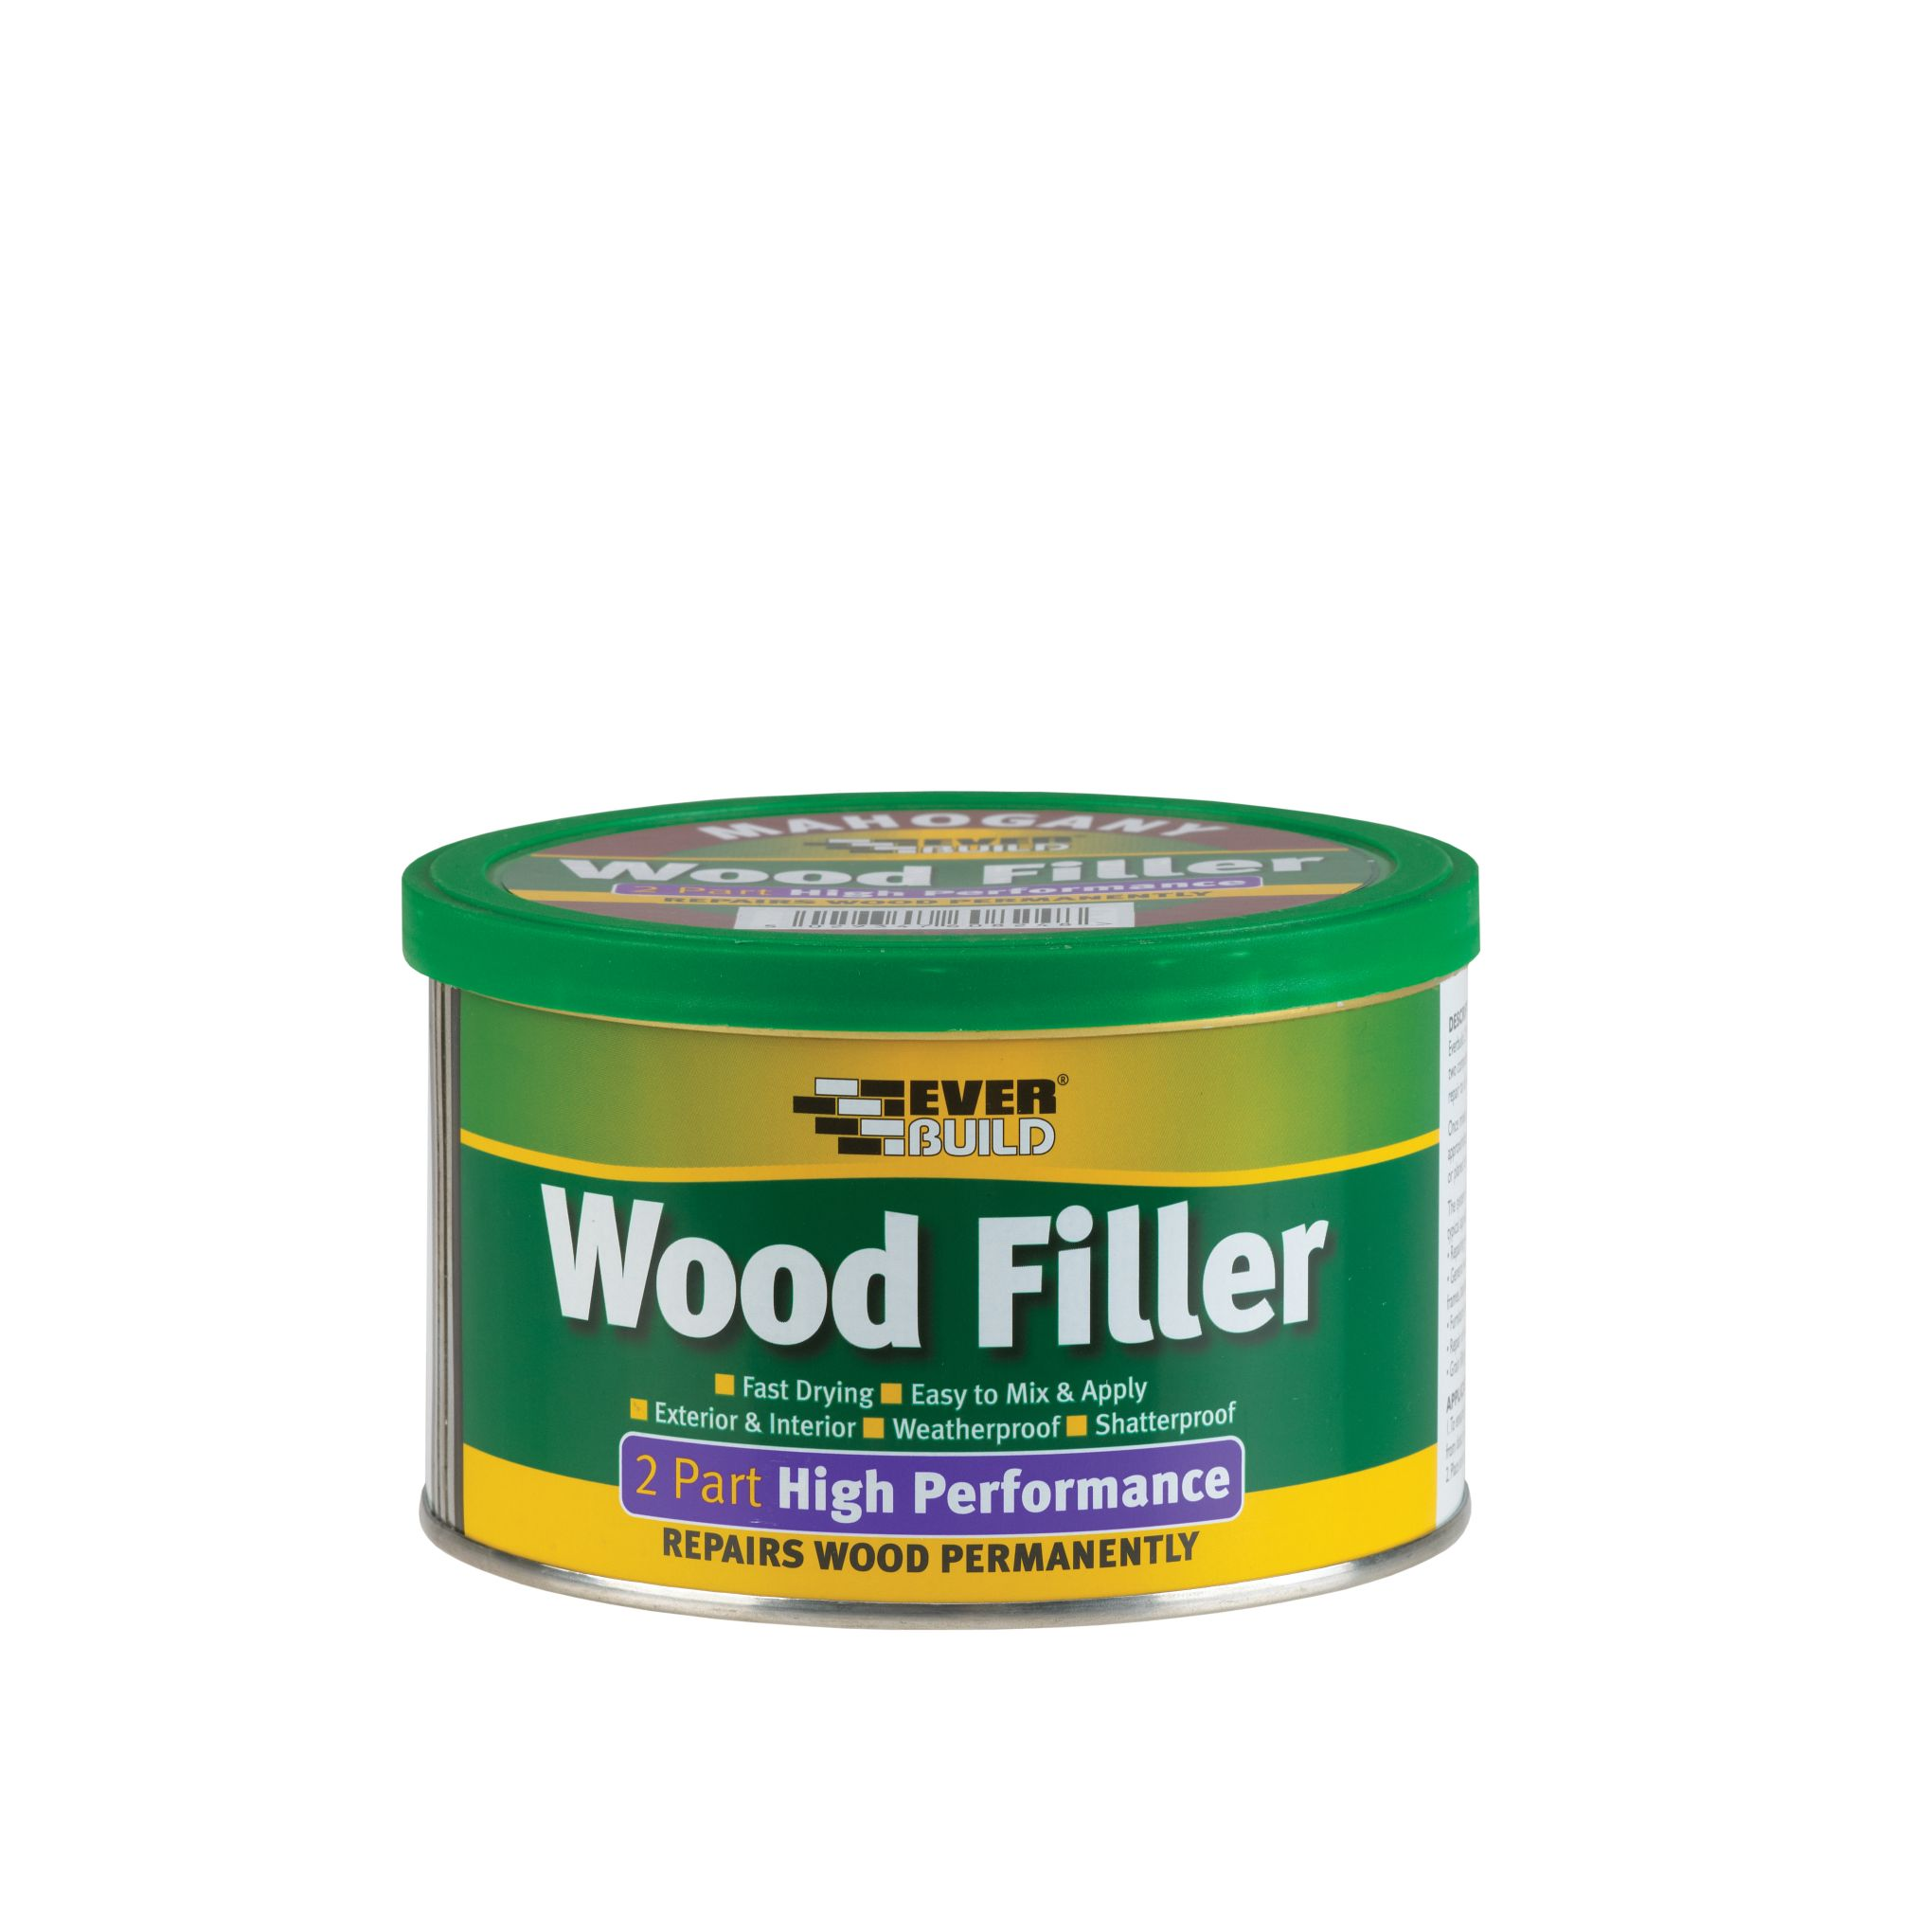 2 PART WOOD FILLER STAINABLE LIGHT 500GR